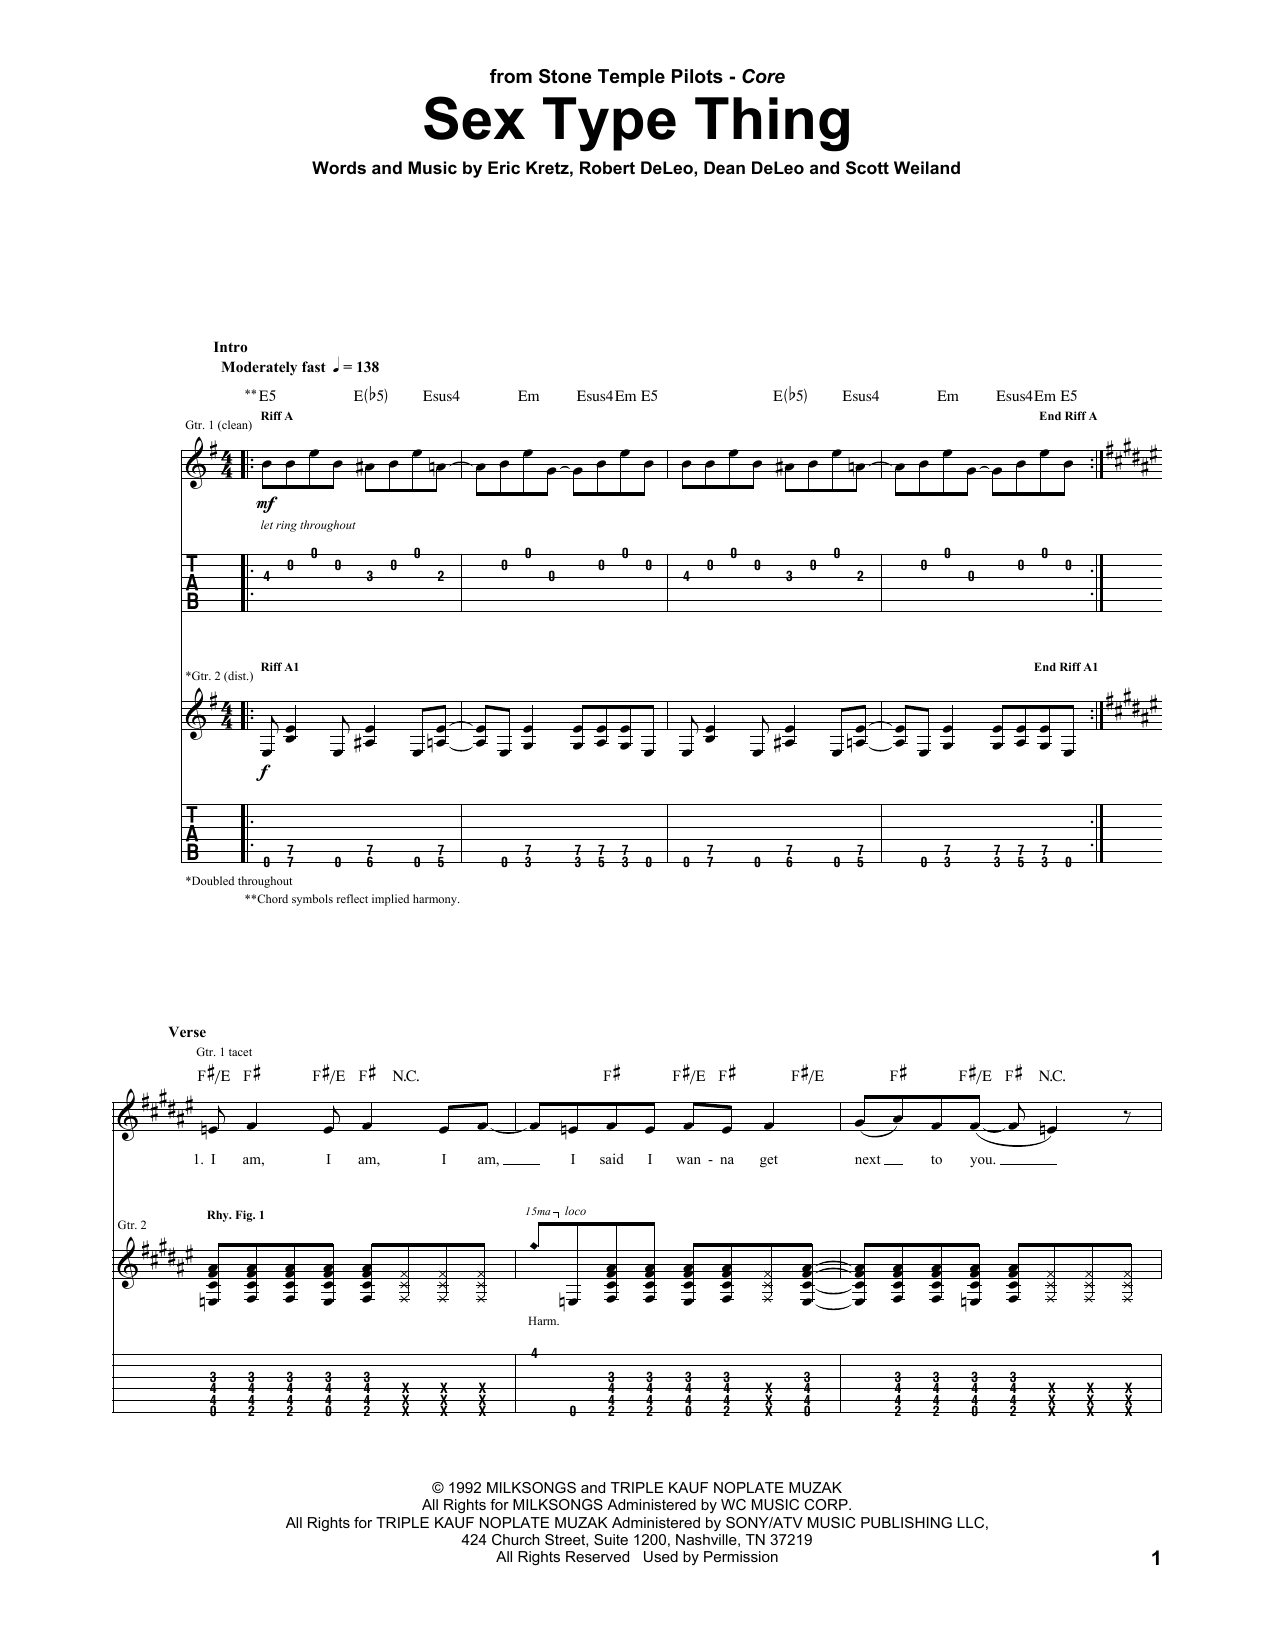 Bass tab for sex type thing